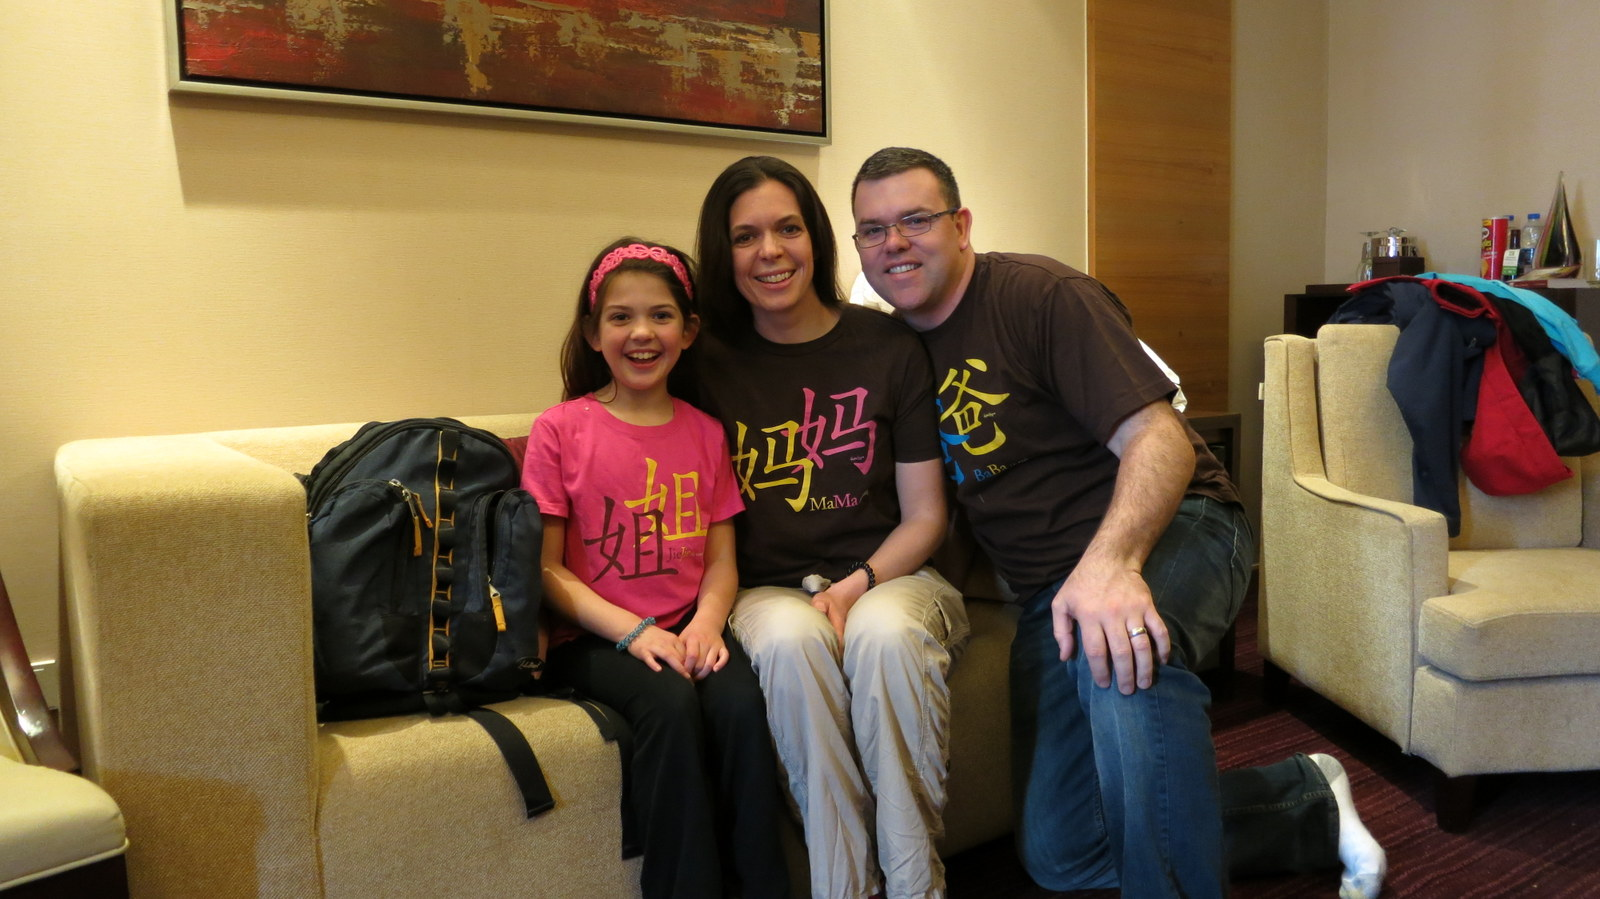 Wearing our t-shirts that say Mommy, Daddy, and Big sister in Chinese.